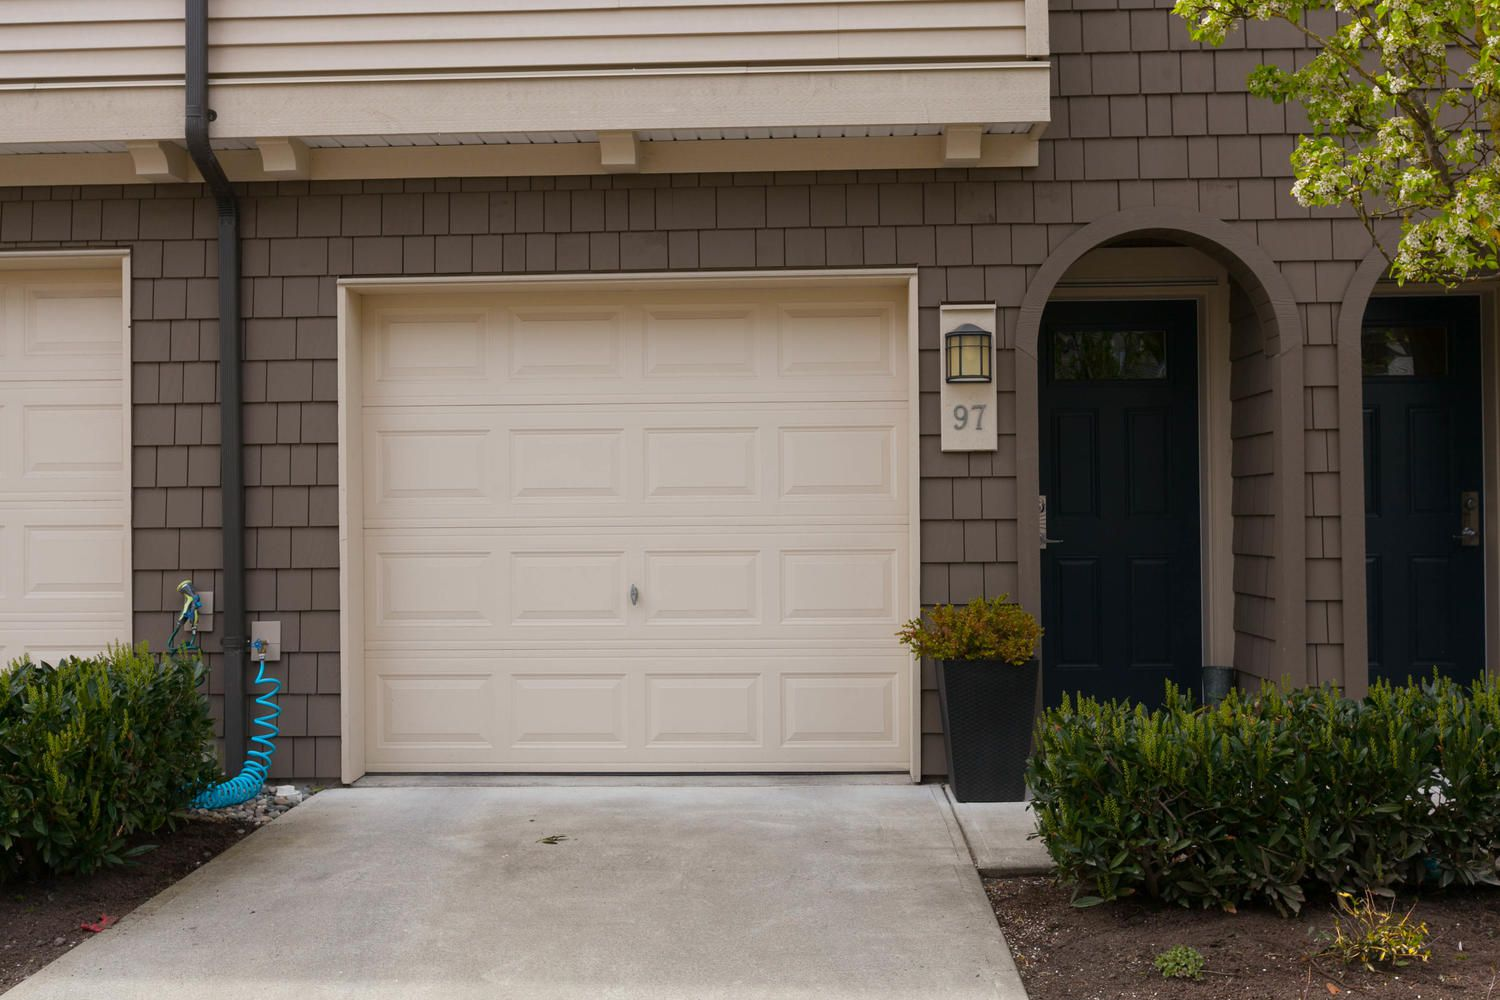 """Photo 45: Photos: 97 7938 209 Street in Langley: Willoughby Heights Townhouse for sale in """"Red Maple Park"""" : MLS®# R2260950"""